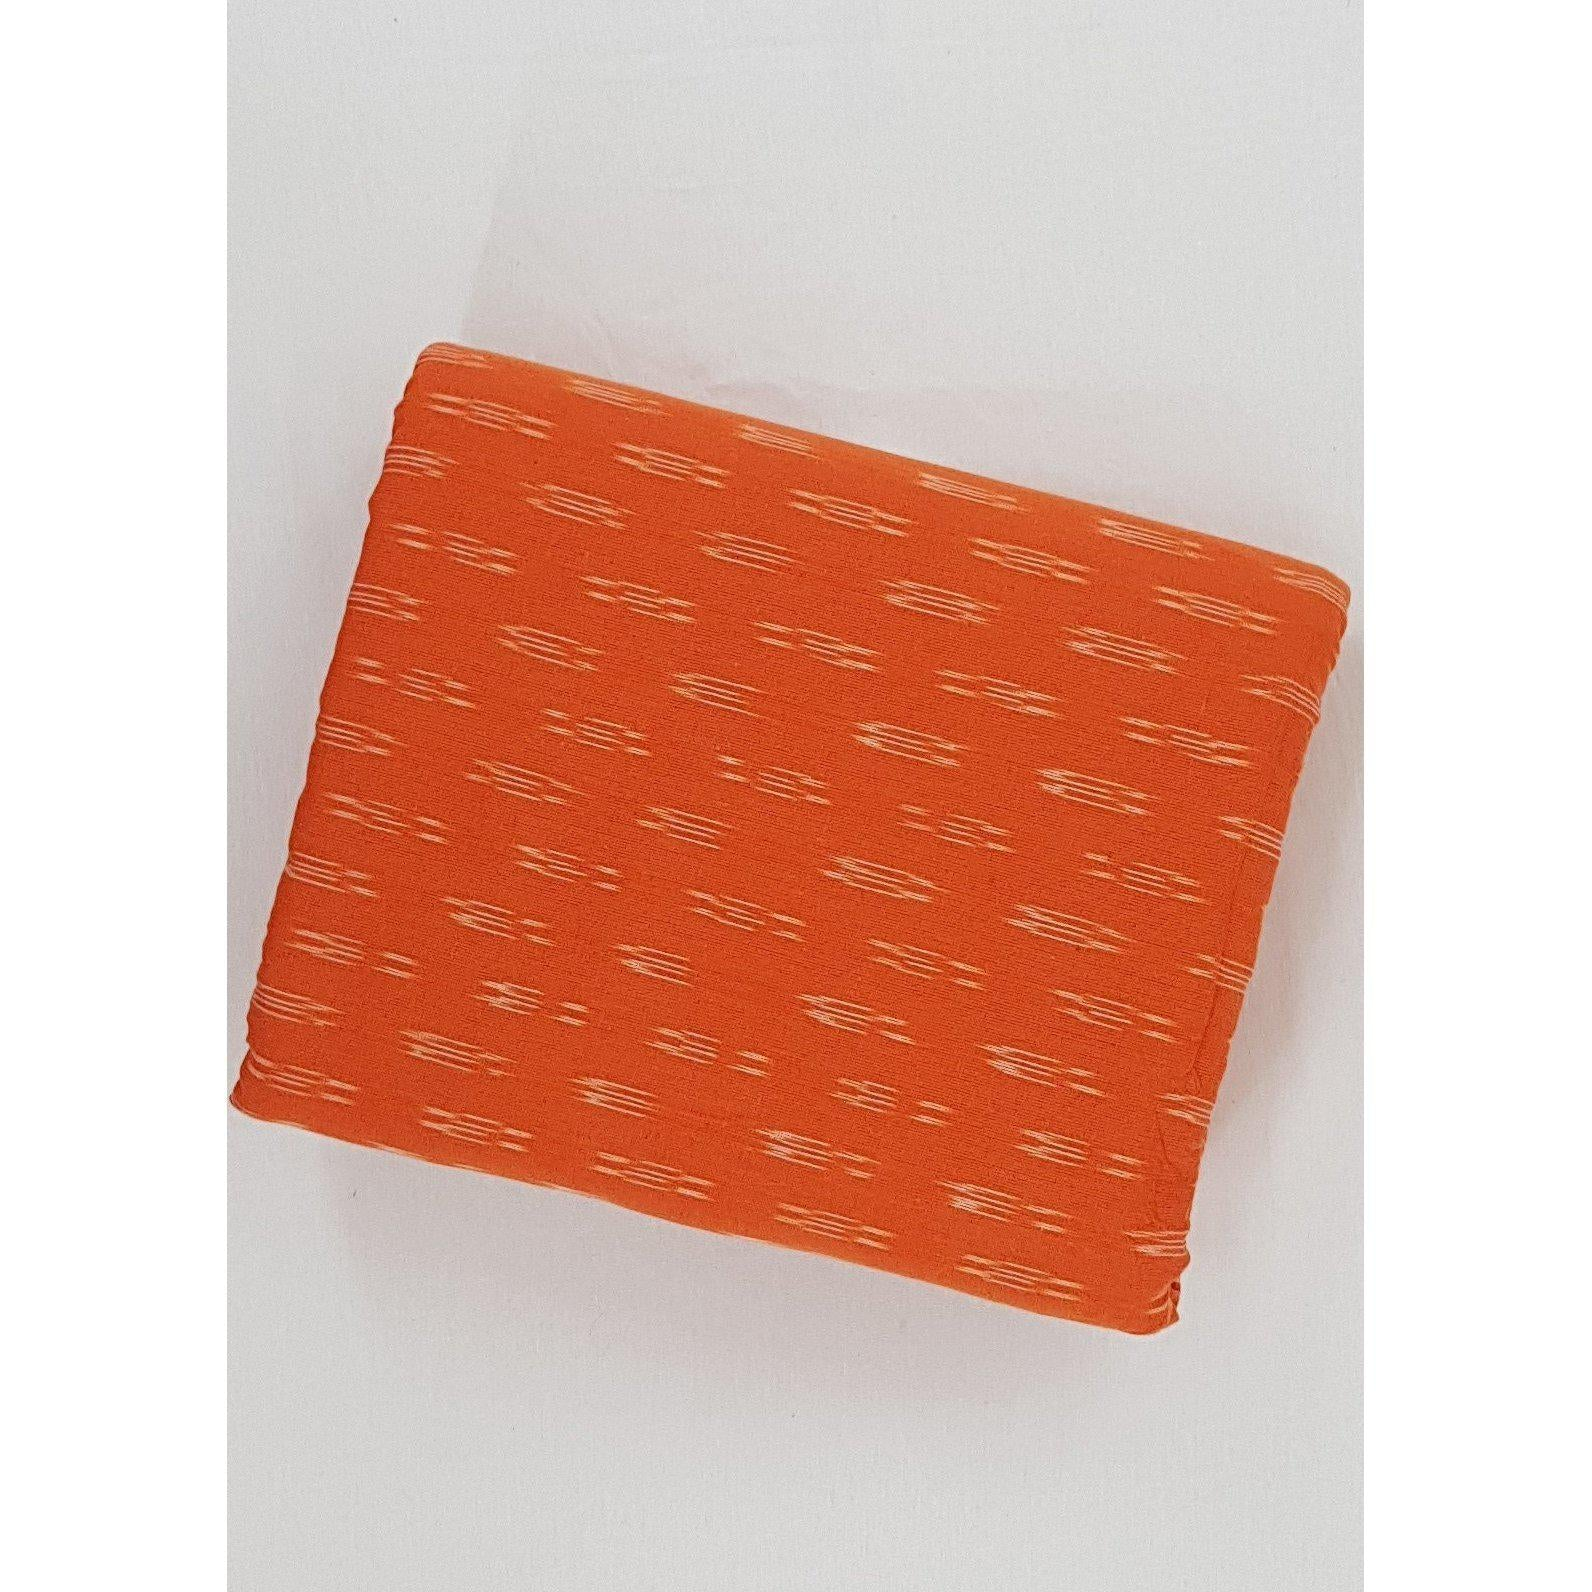 Alphonso Orange color ikat handwoven cotton fabric - Vinshika